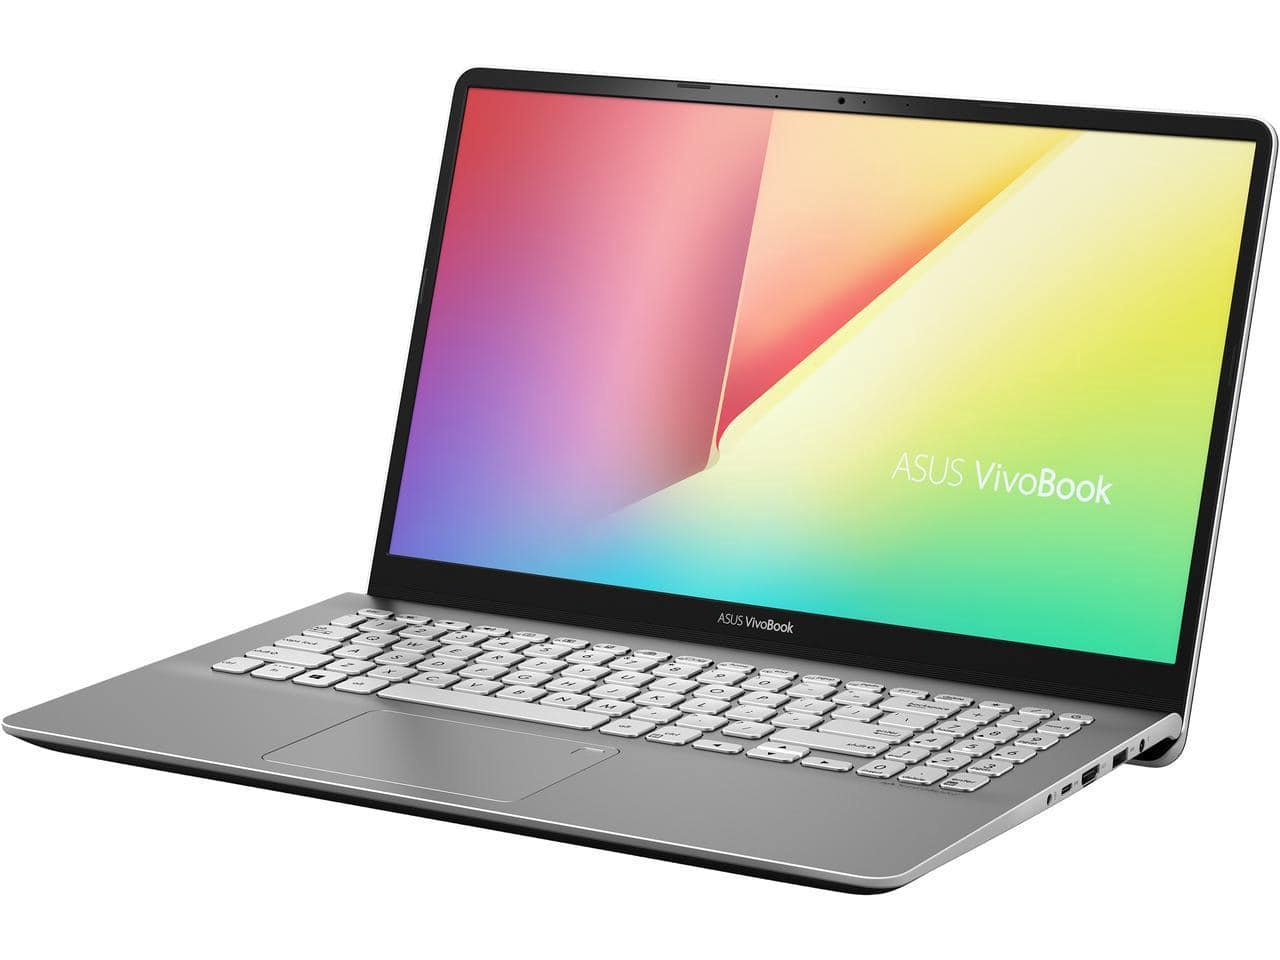 New Asus Vivobook S530FN-BH73: 15.6'' FHD IPS, i7-8565U, 8GB DDR4, MX150 2GB, 256GB SSD, 1TB HDD, WIn10H @ $780 + F/S